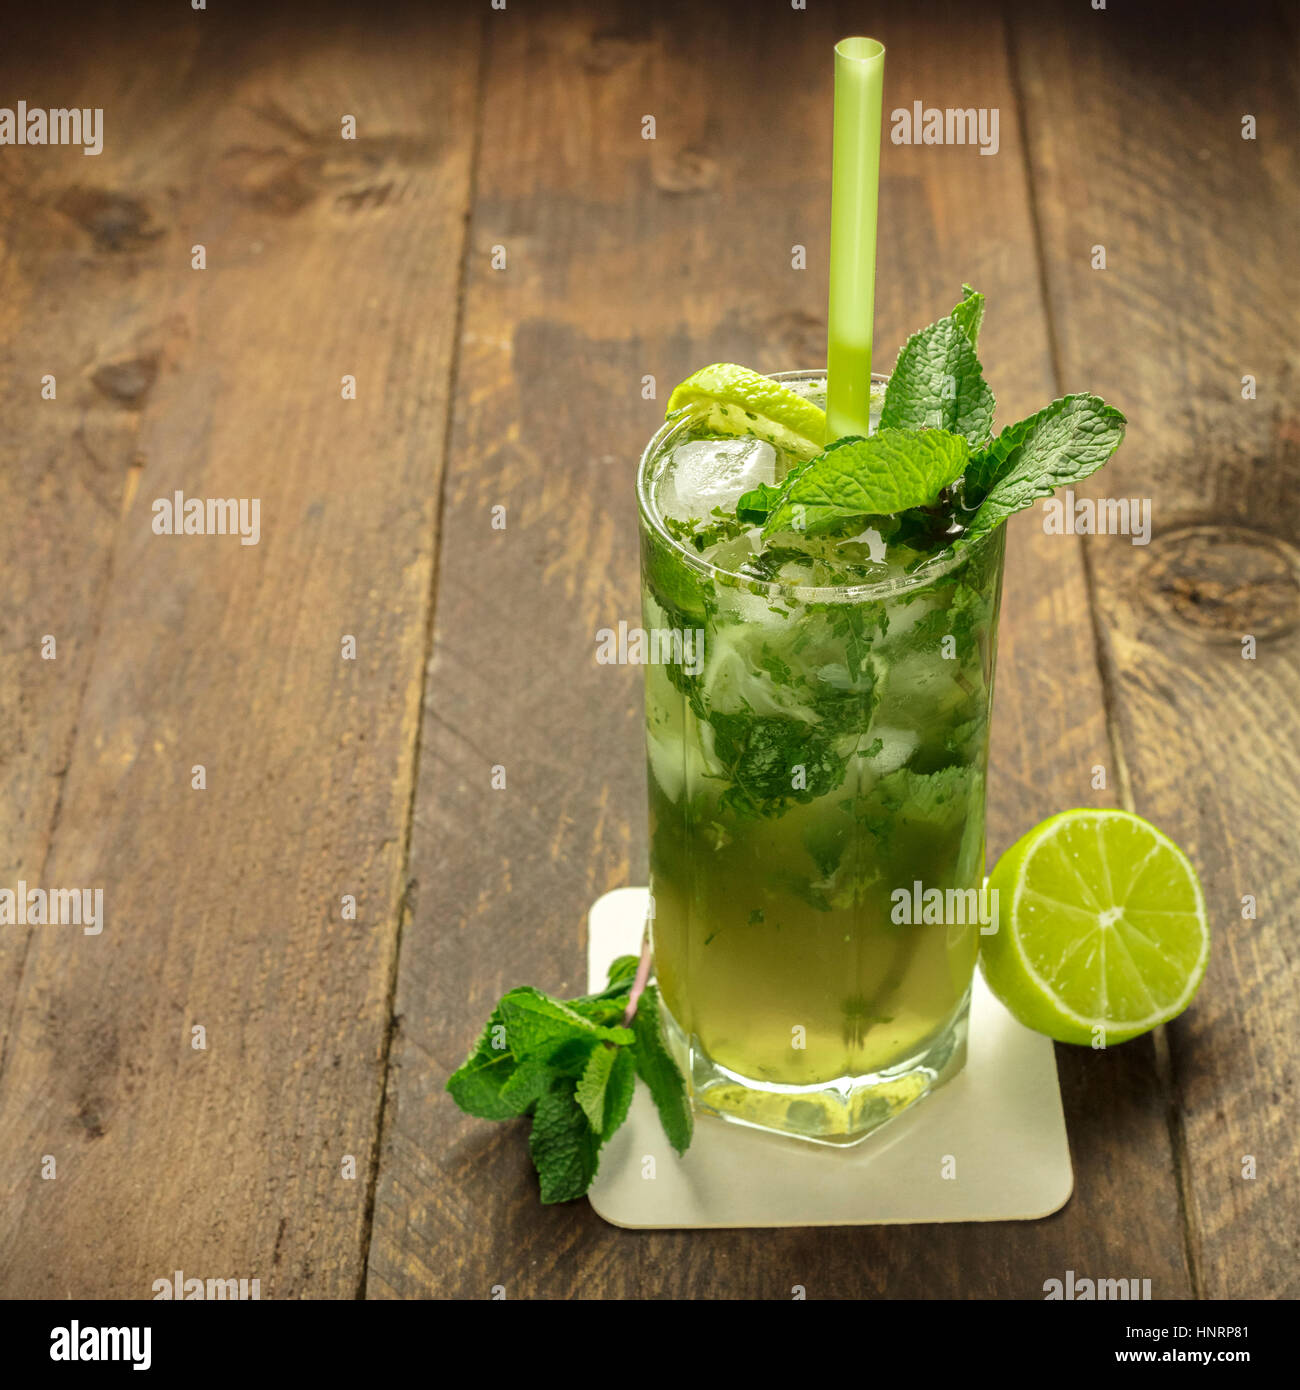 Mojito cocktail with mint leaves and lime - Stock Image